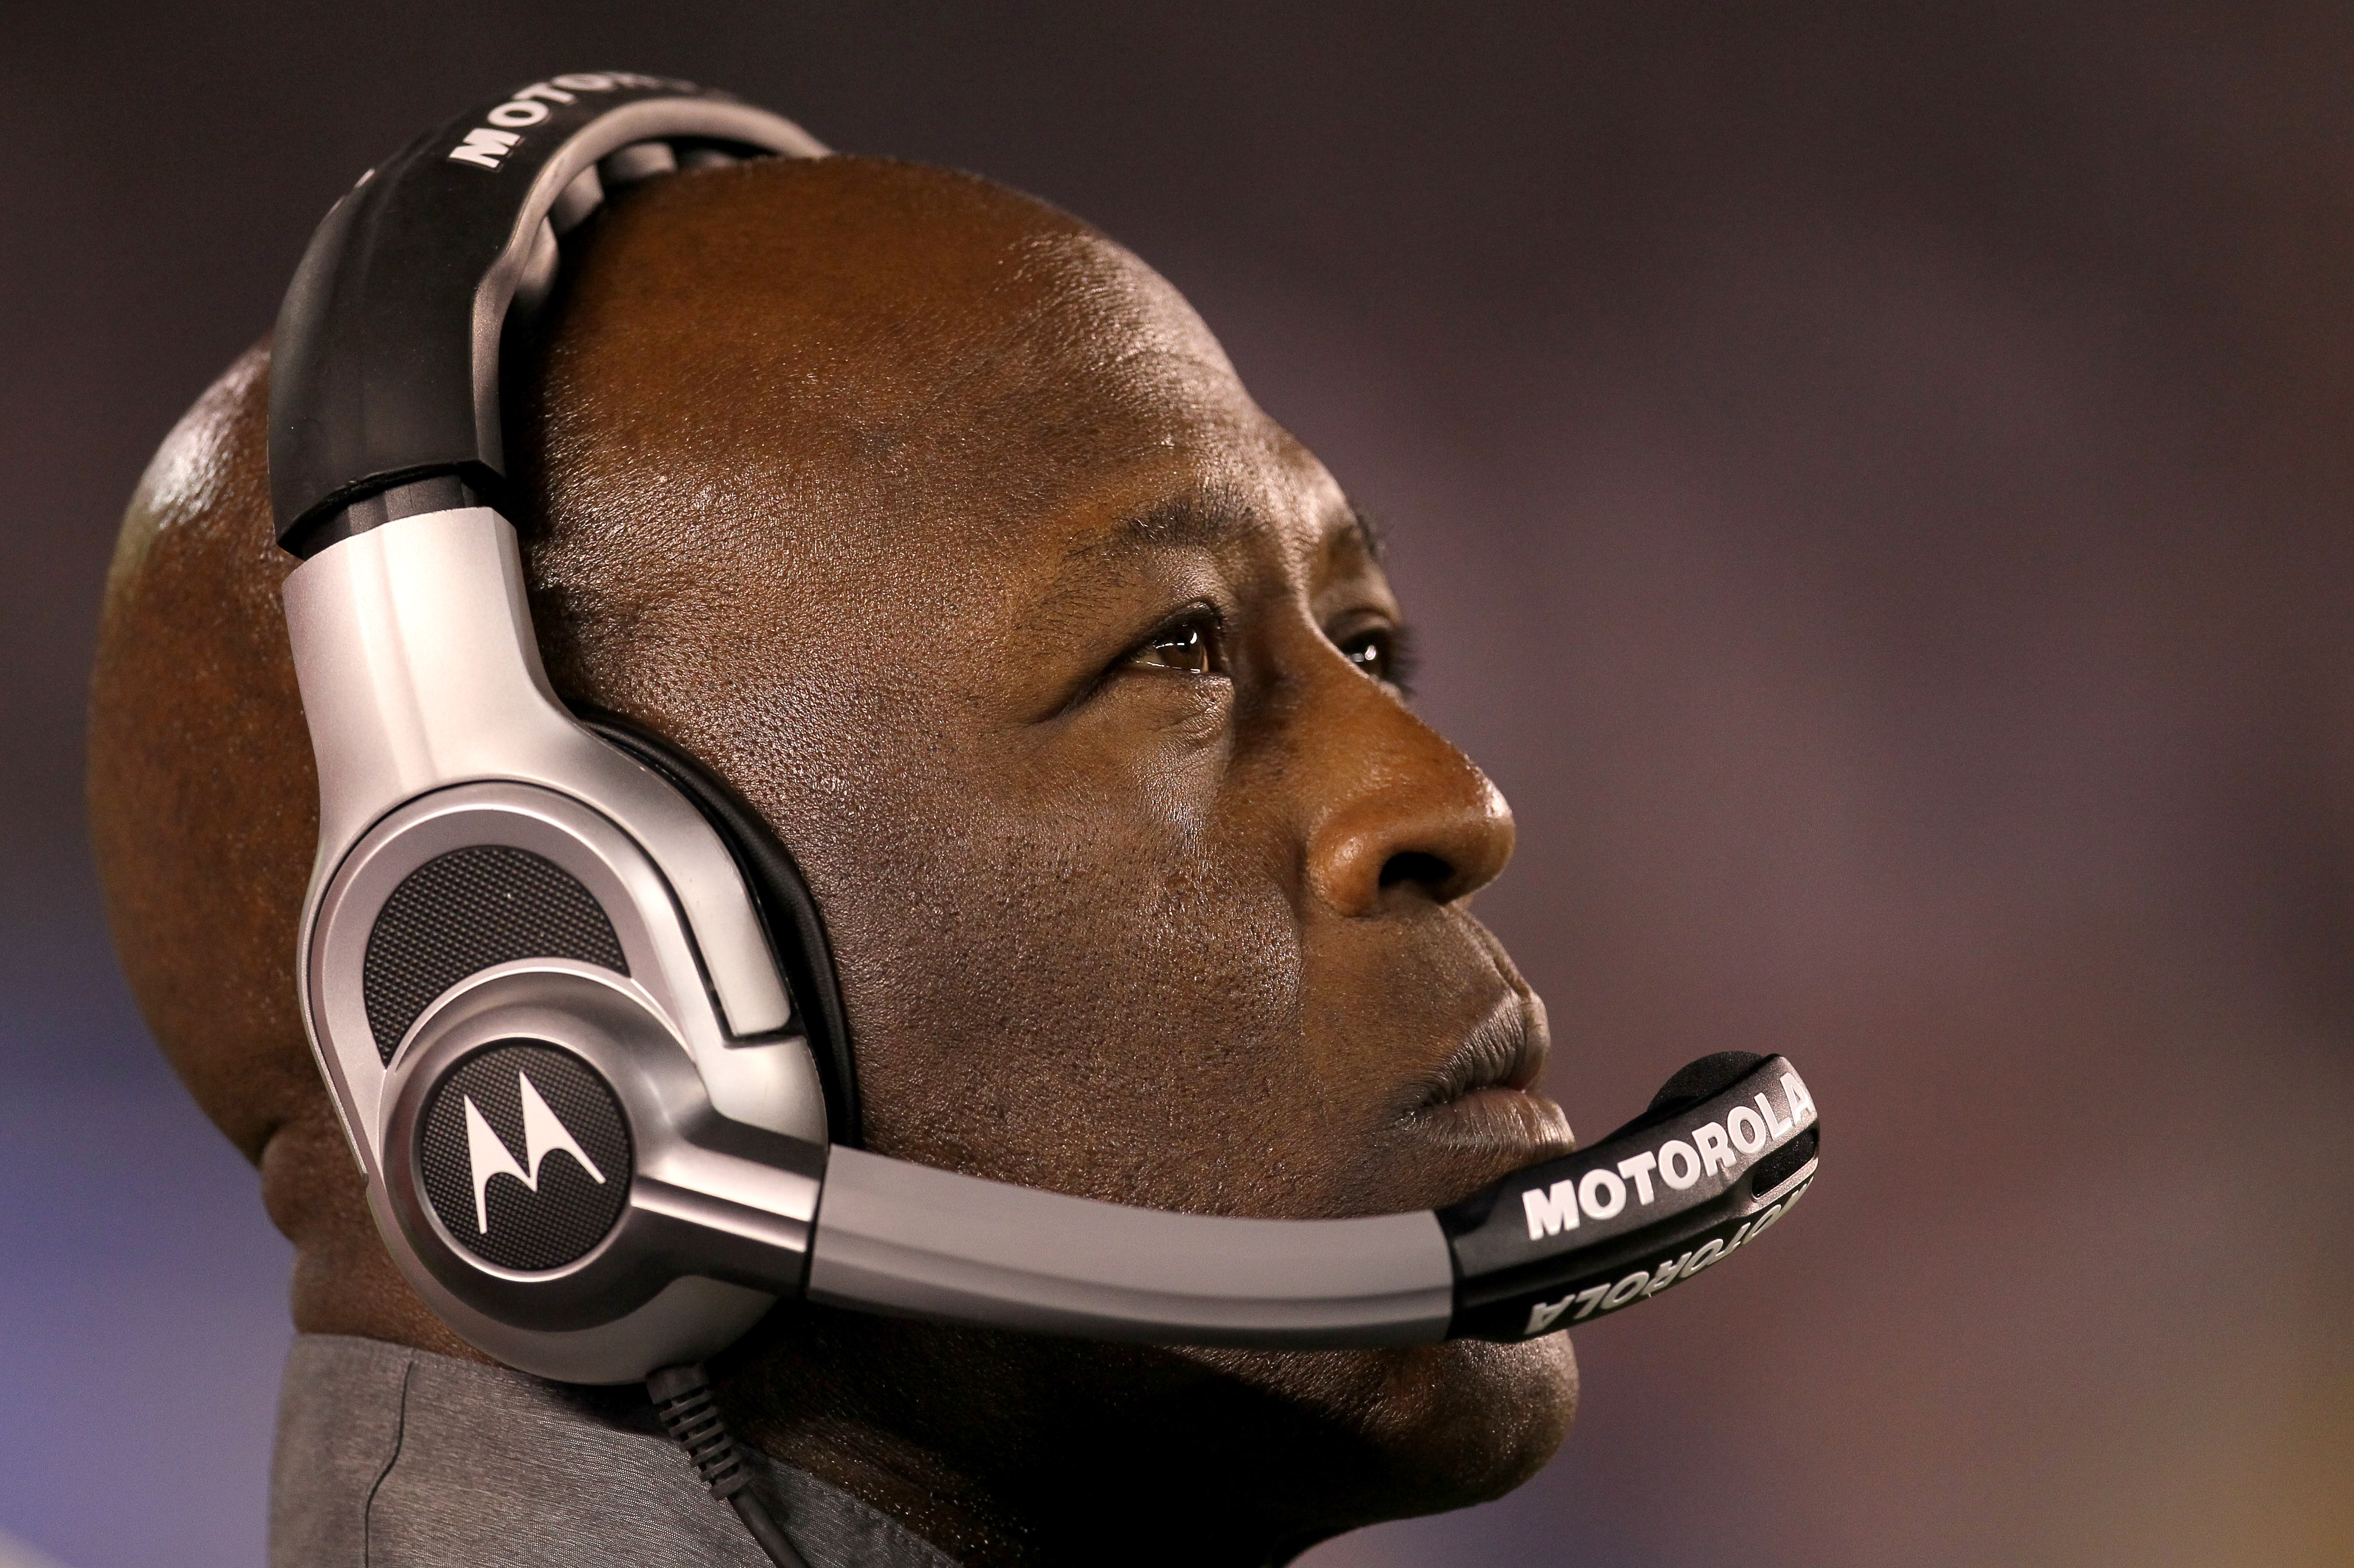 SAN DIEGO - AUGUST 14:  Head coach Lovie Smith of the Chicago Bears looks on during the game with the San Diego Chargers on August 14, 2010 at Qualcomm Stadium in San Diego, California.  The Chargers won 25-10.  (Photo by Stephen Dunn/Getty Images)